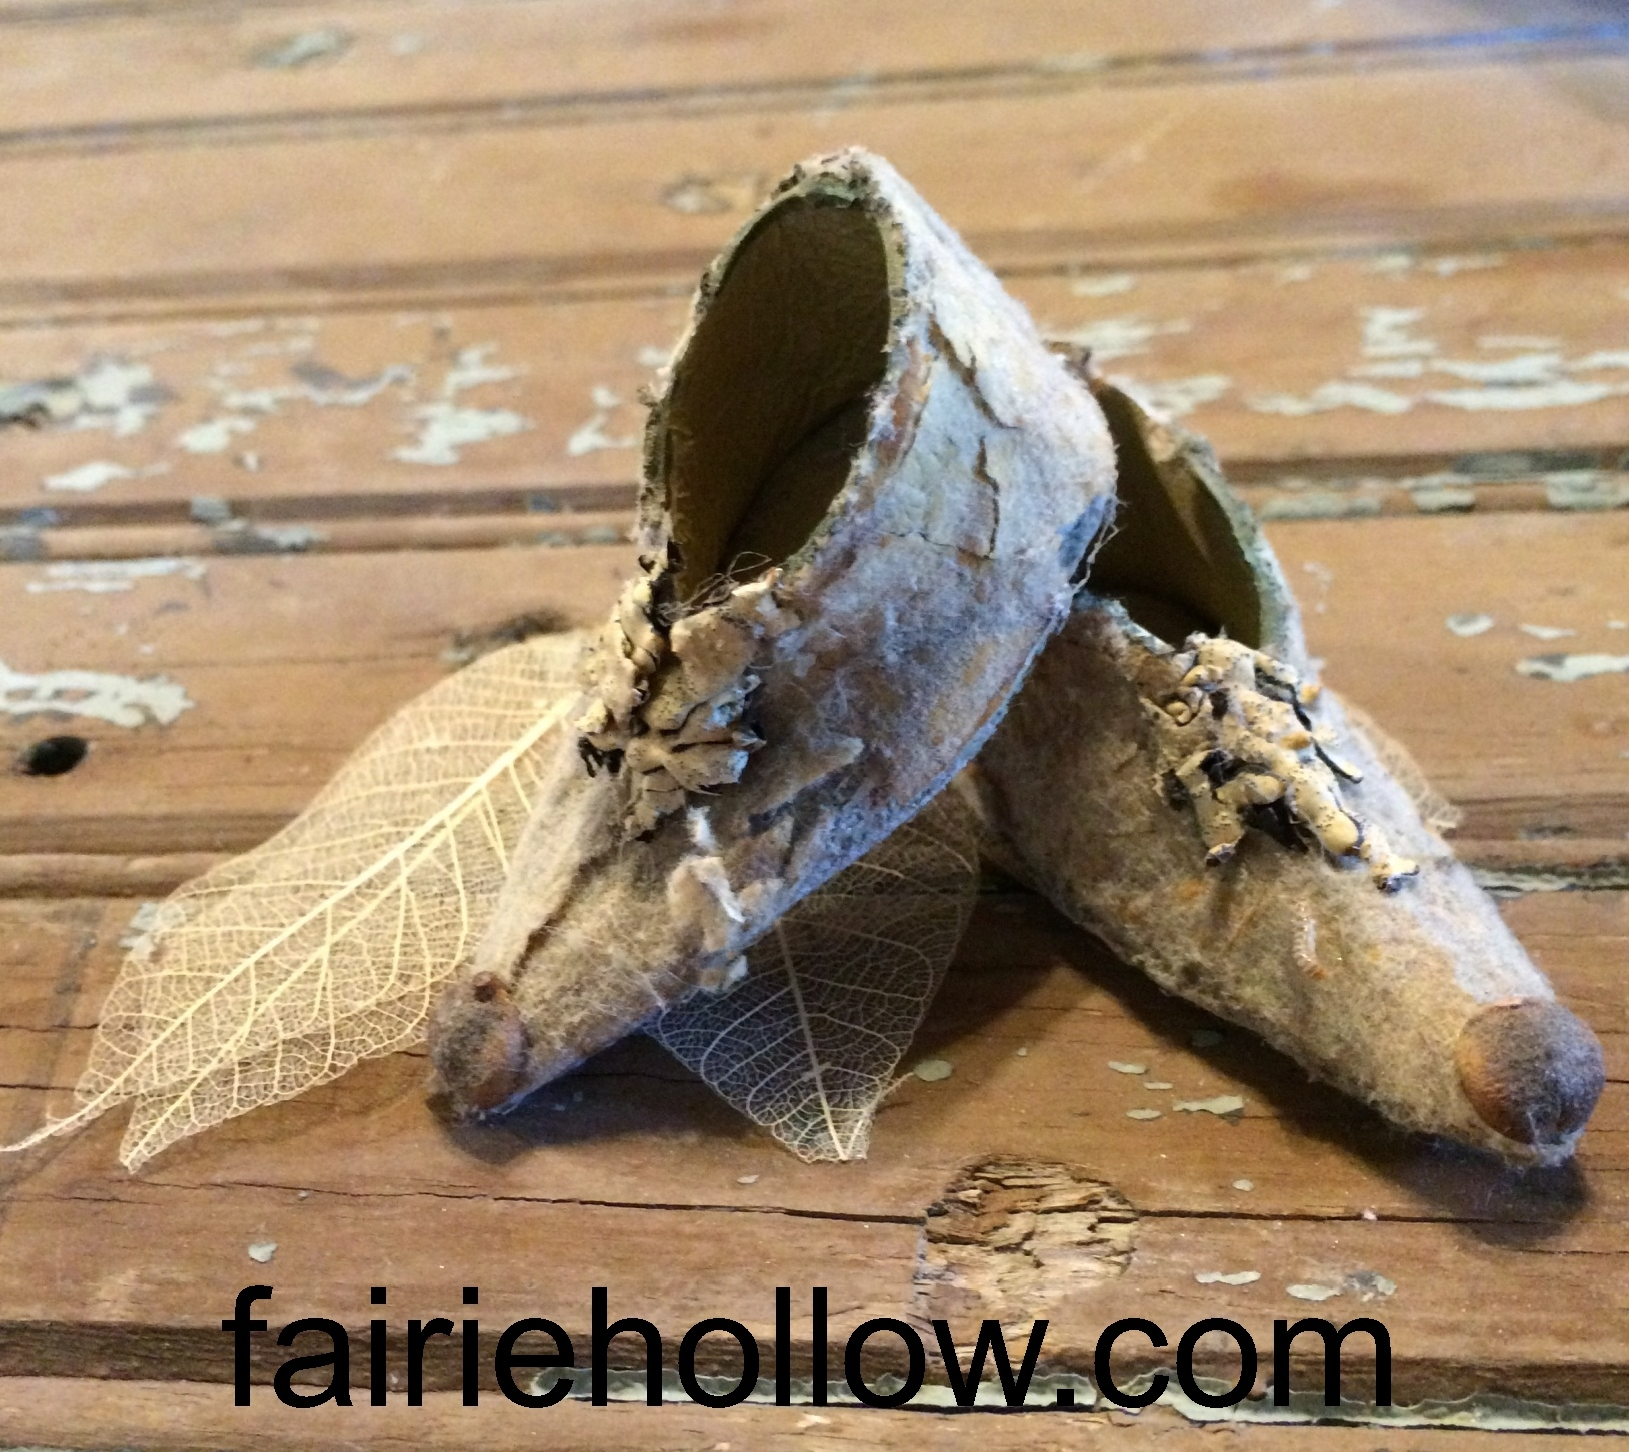 Fairy shoes made from lambs ear and pods. Get the patterns for these shoes|fairiehollow.com